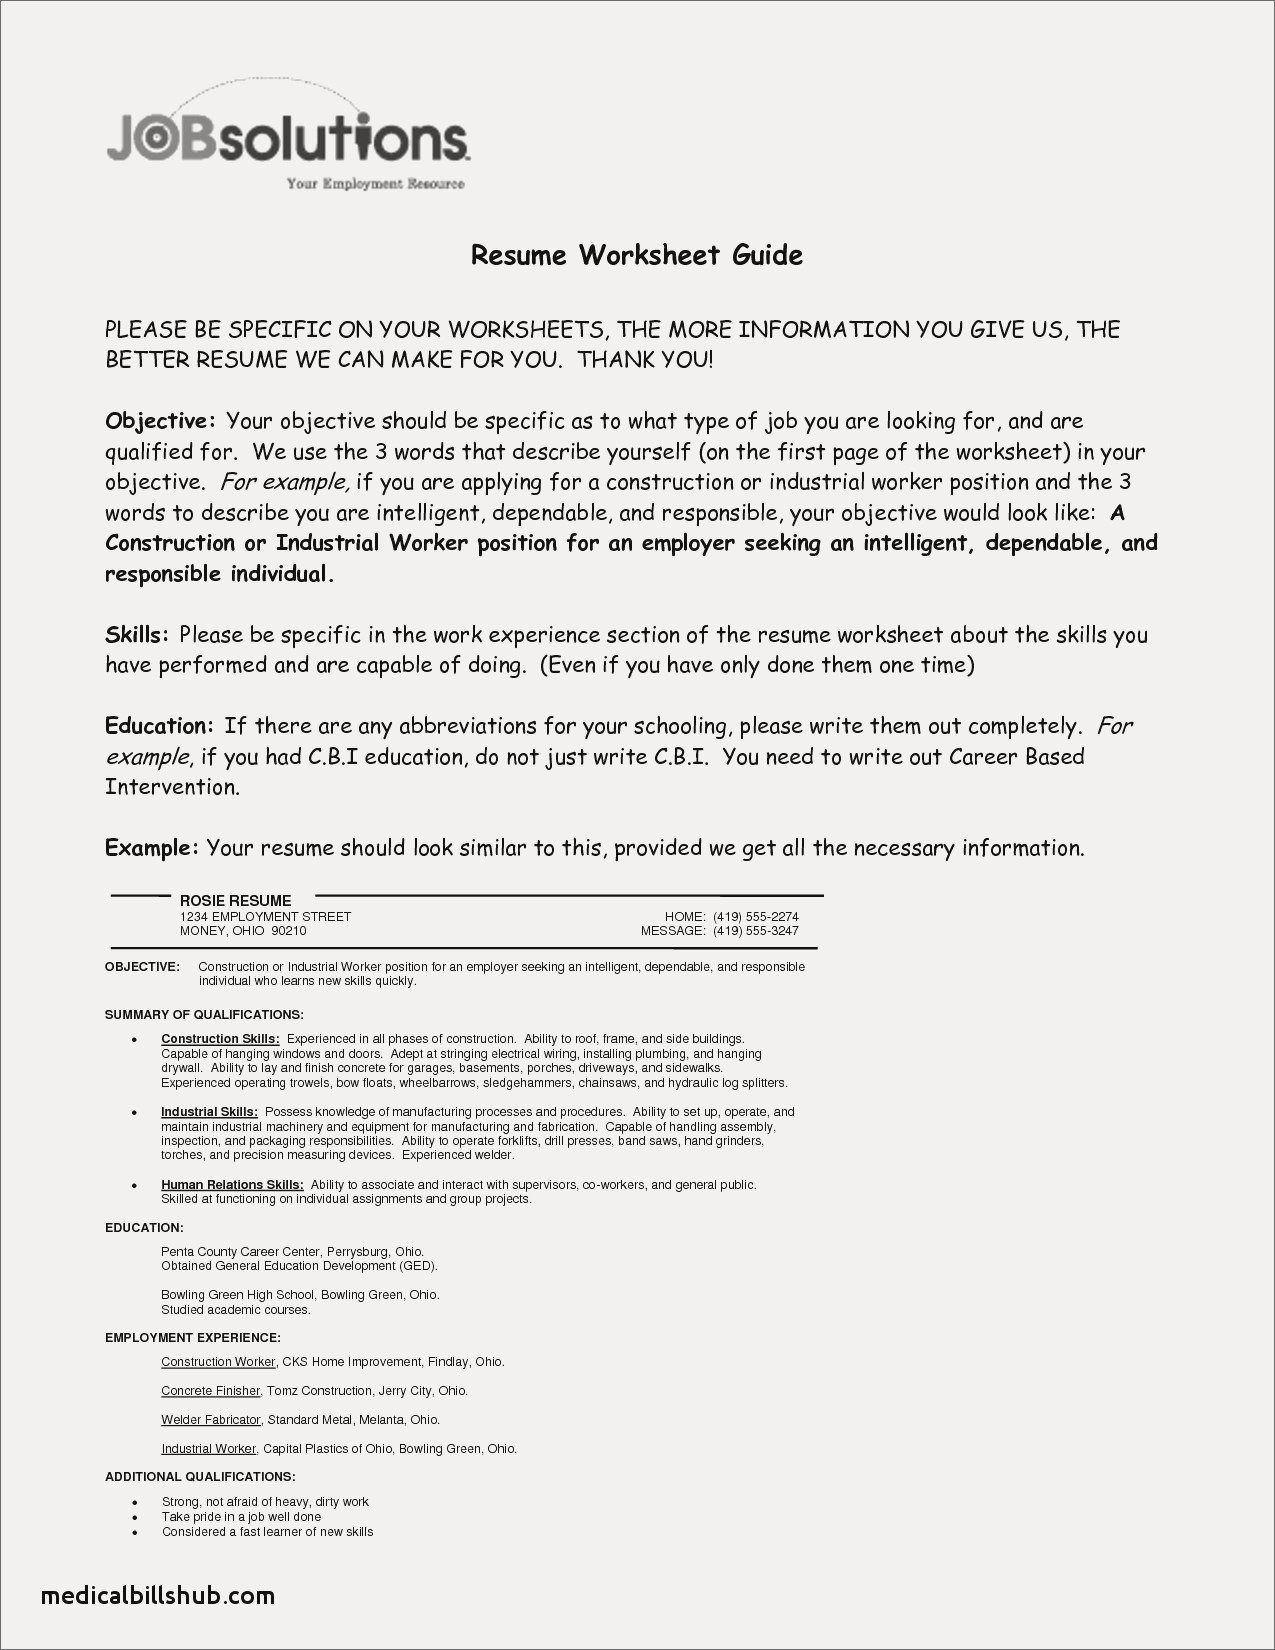 13 medical school application resume examples